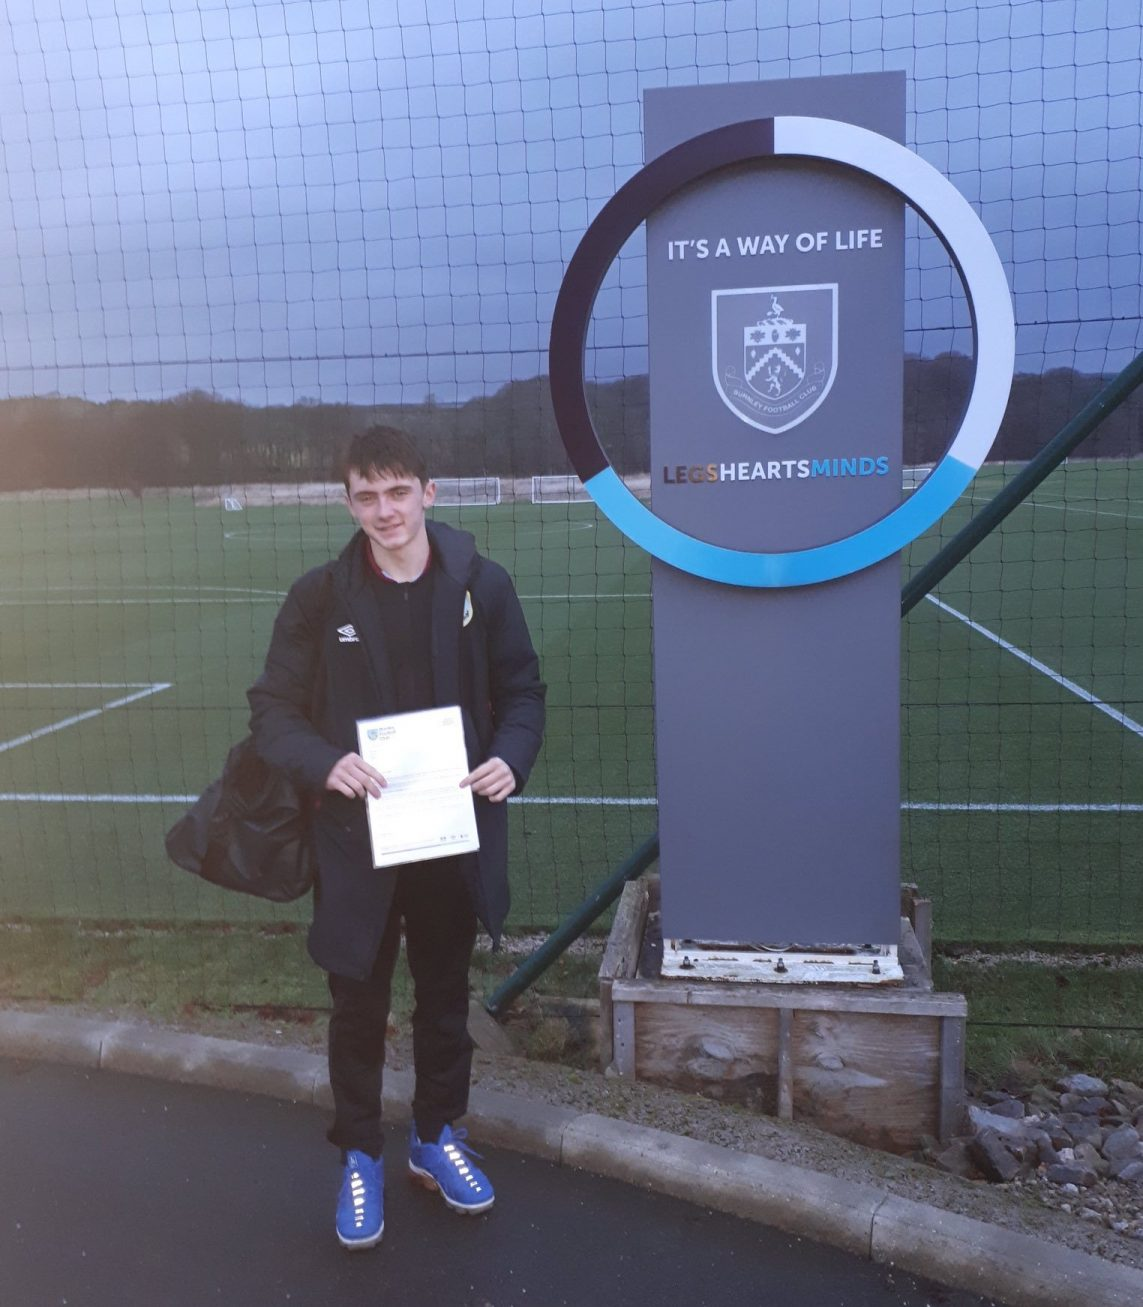 Westholme year 11 pupil Will Couch stands outside Burnley FC training ground with club scholarship letter